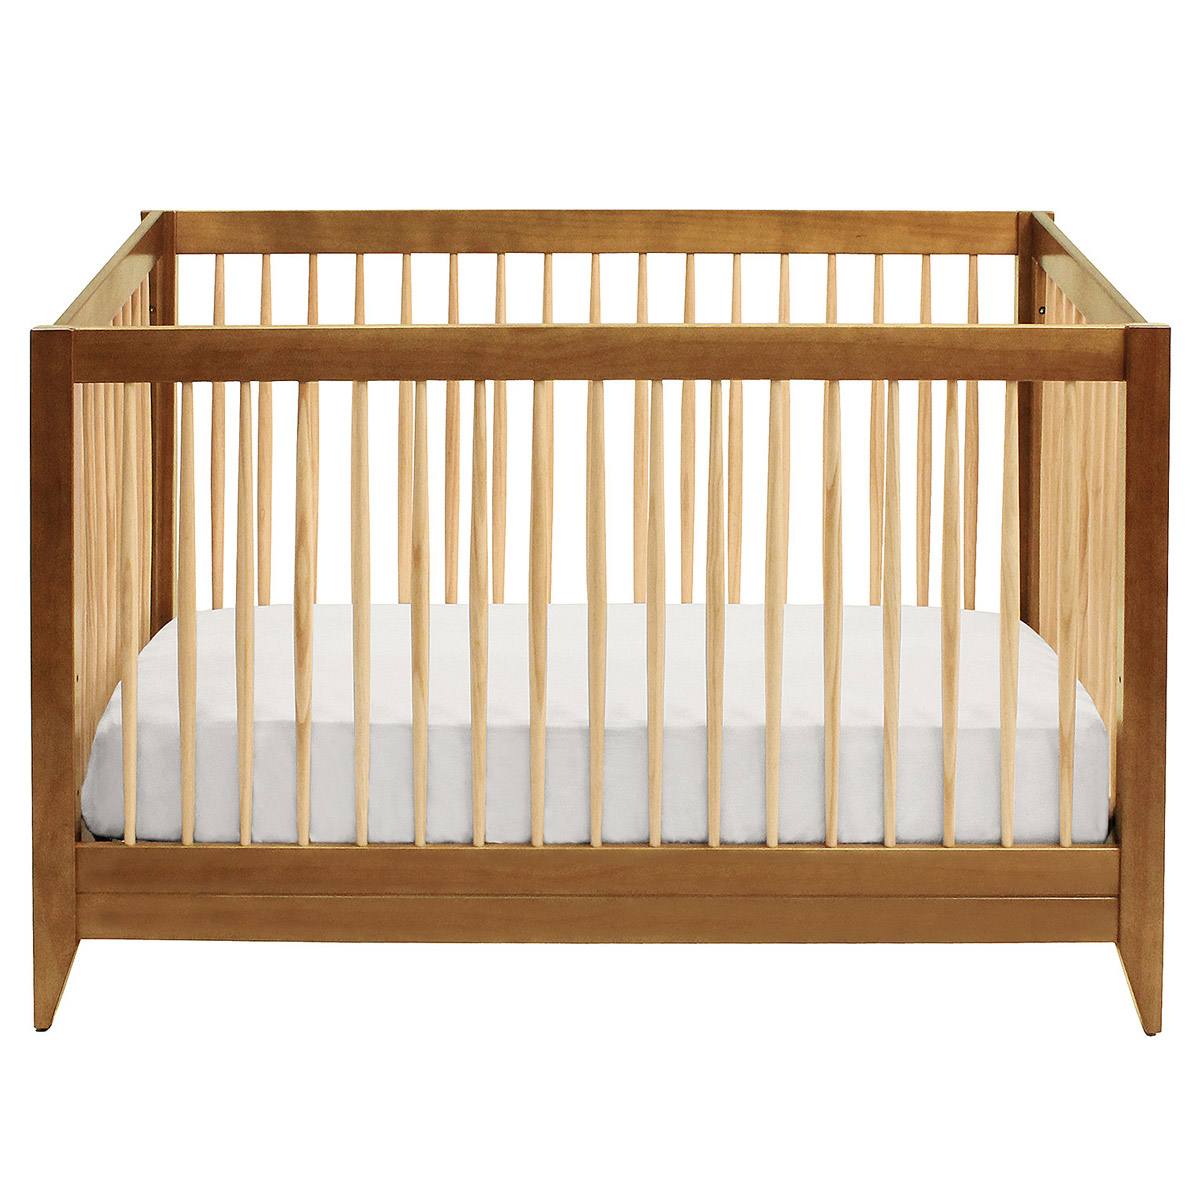 Crib 4 In 1 Baker 4in1 Convertible Crib Maple Ridge